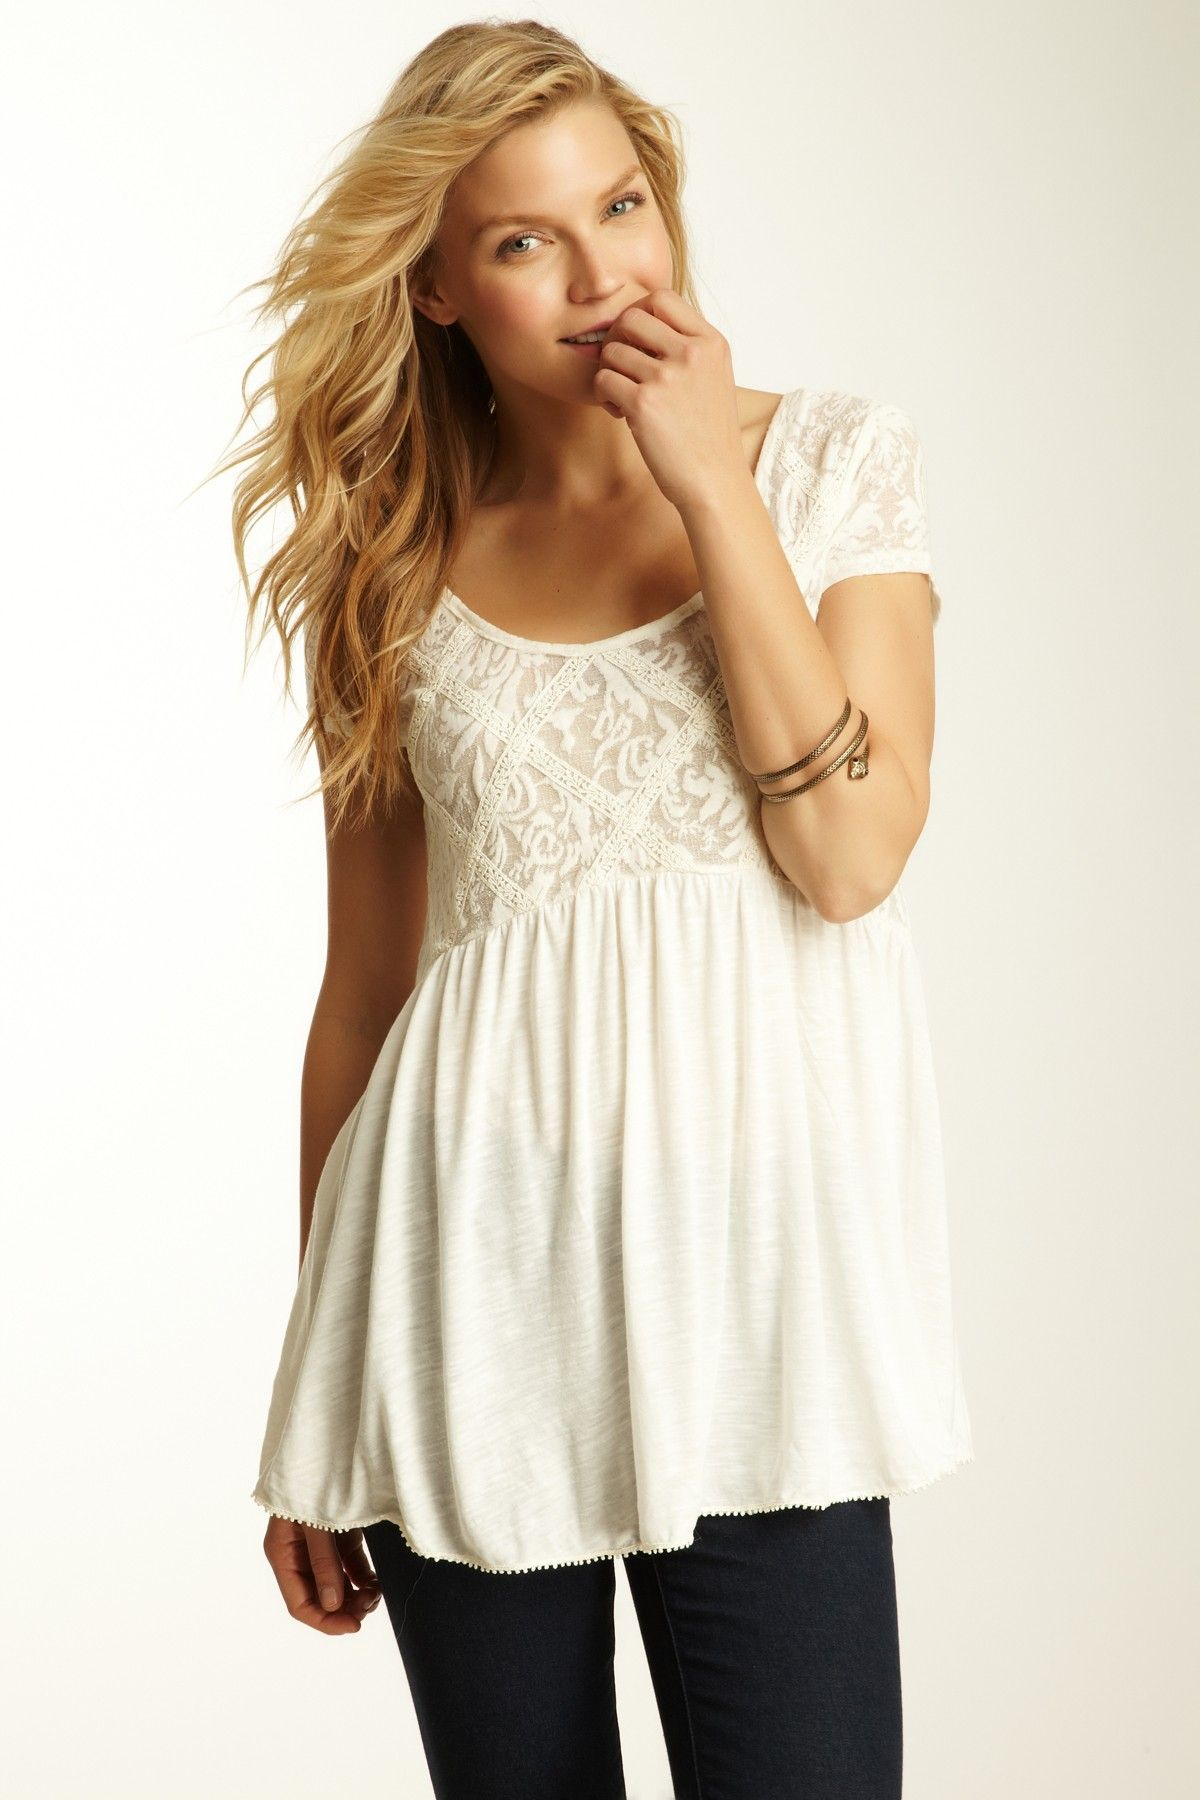 a79057234a4 Free People Extreme Babydoll Top | Style dreams | Fashion, Clothes ...